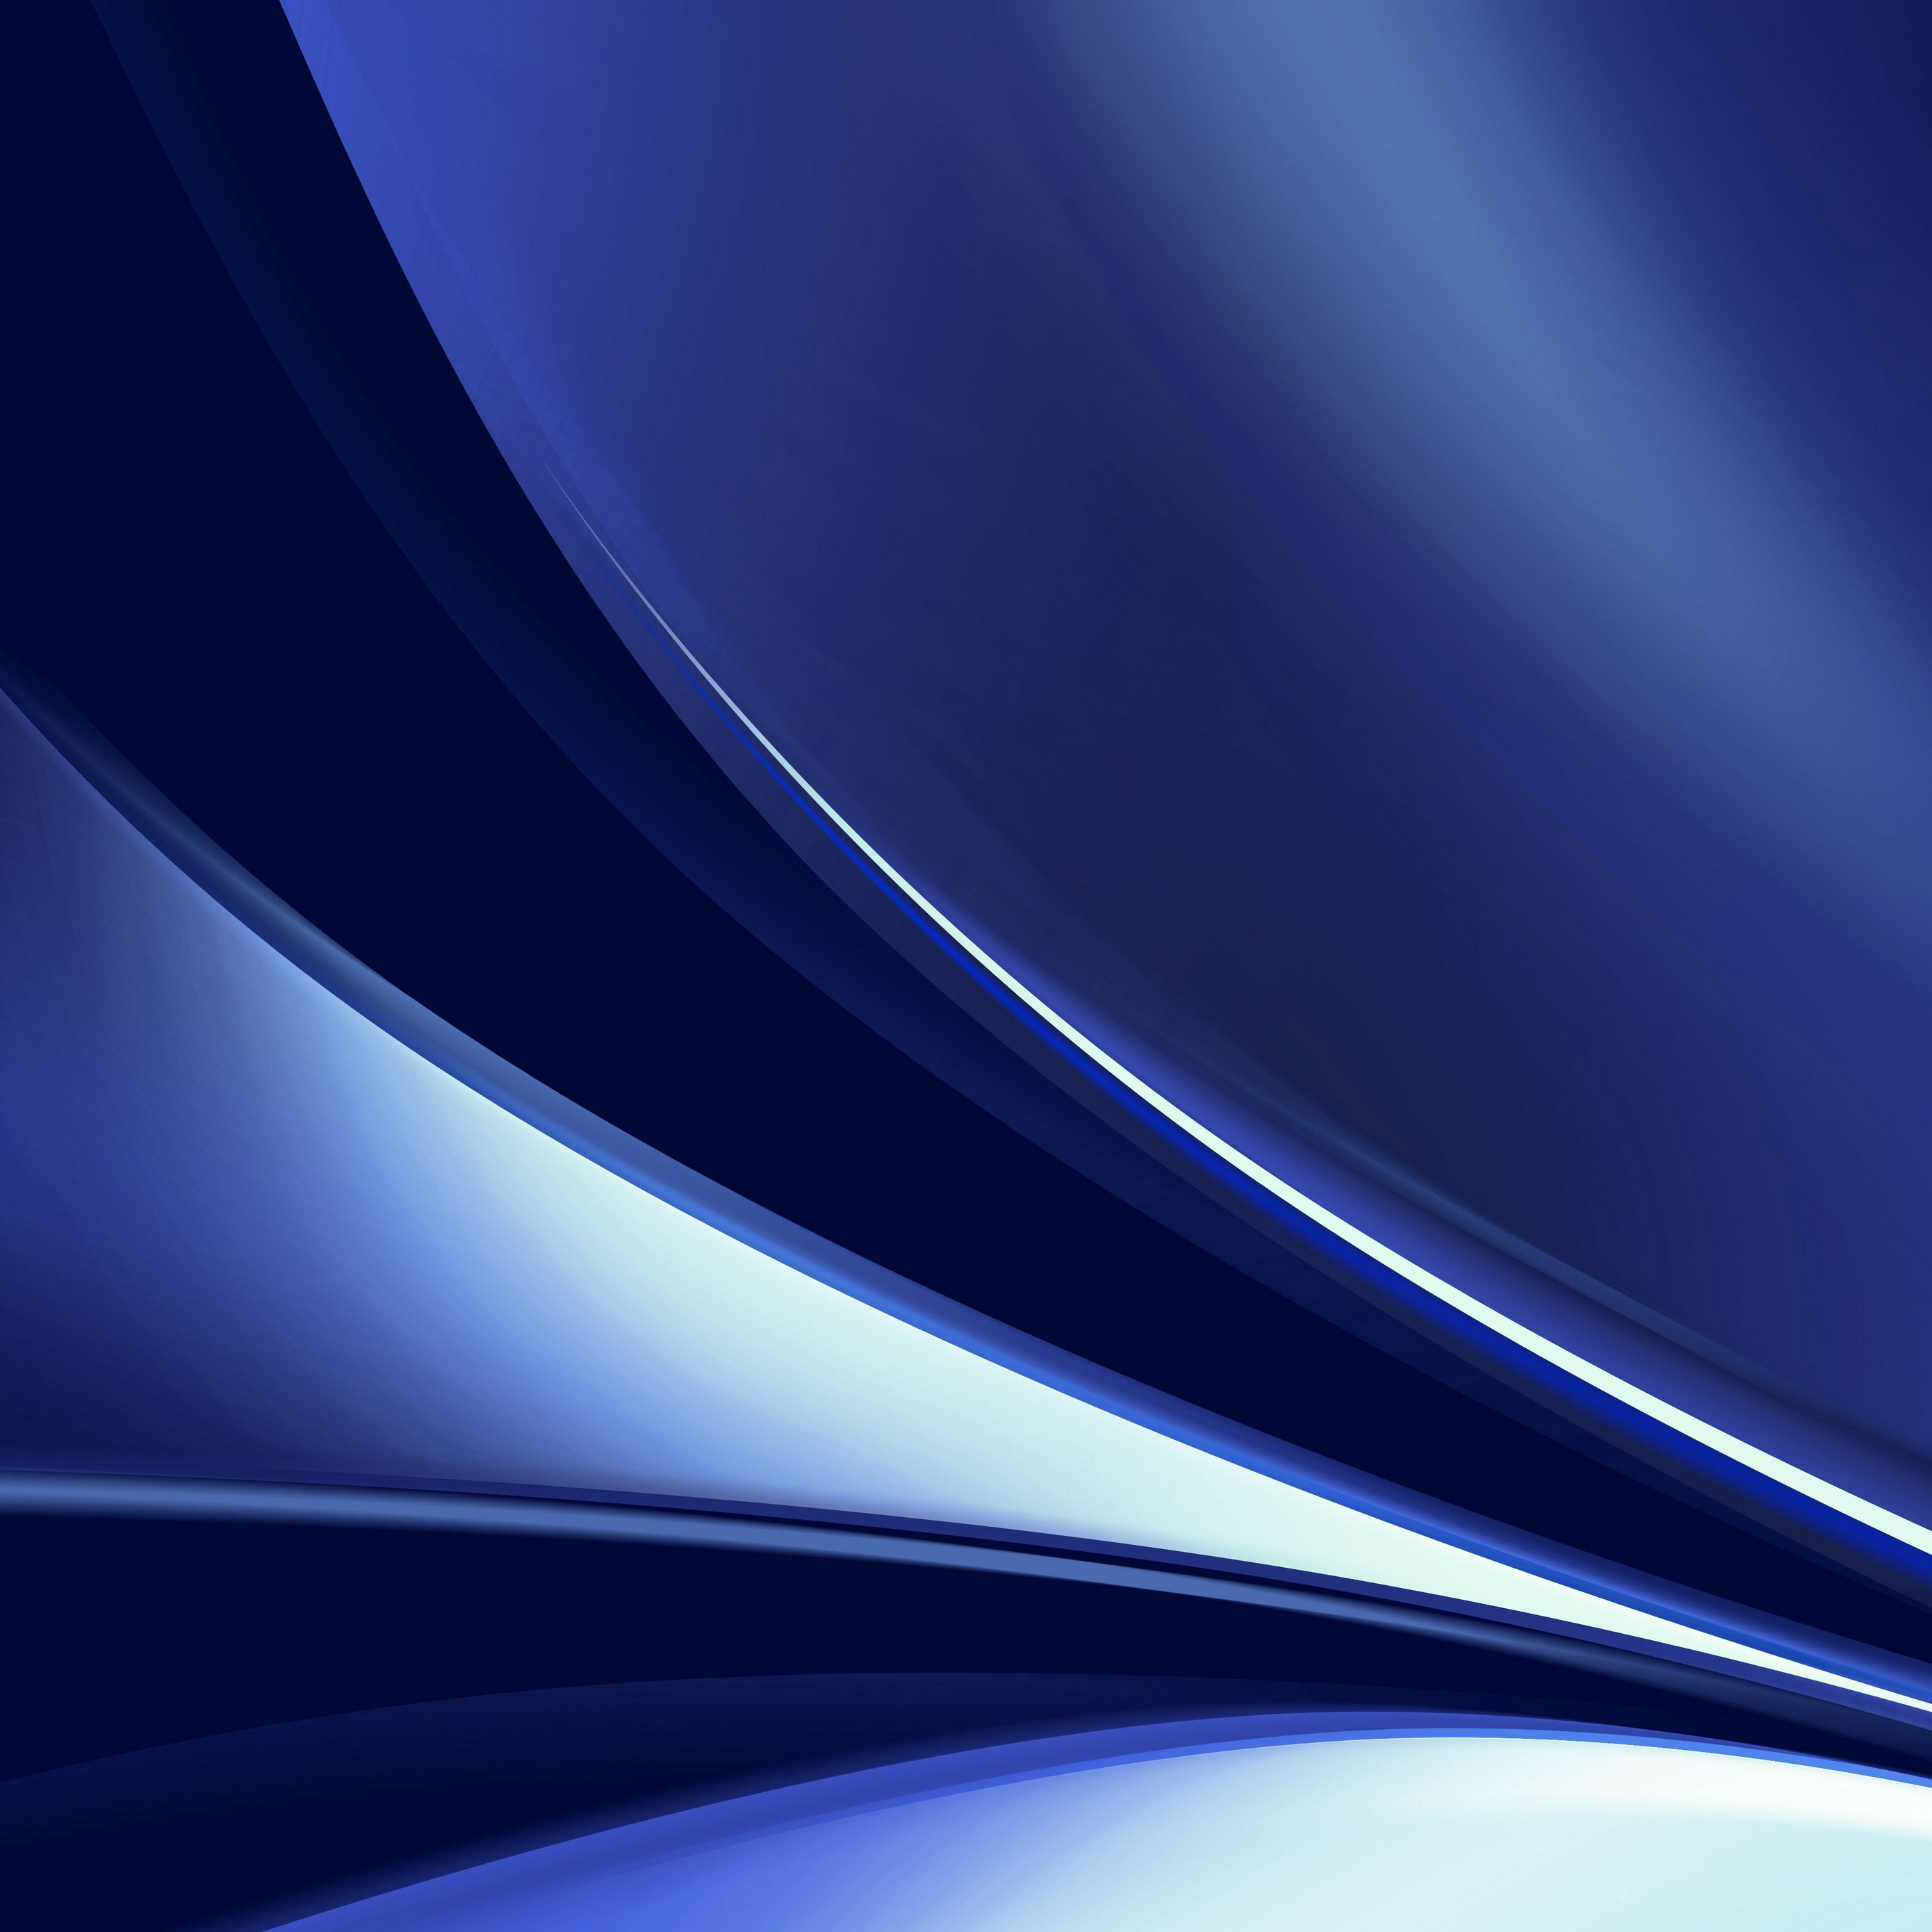 2780x2780 Wallpaper line, shape, surface, smooth